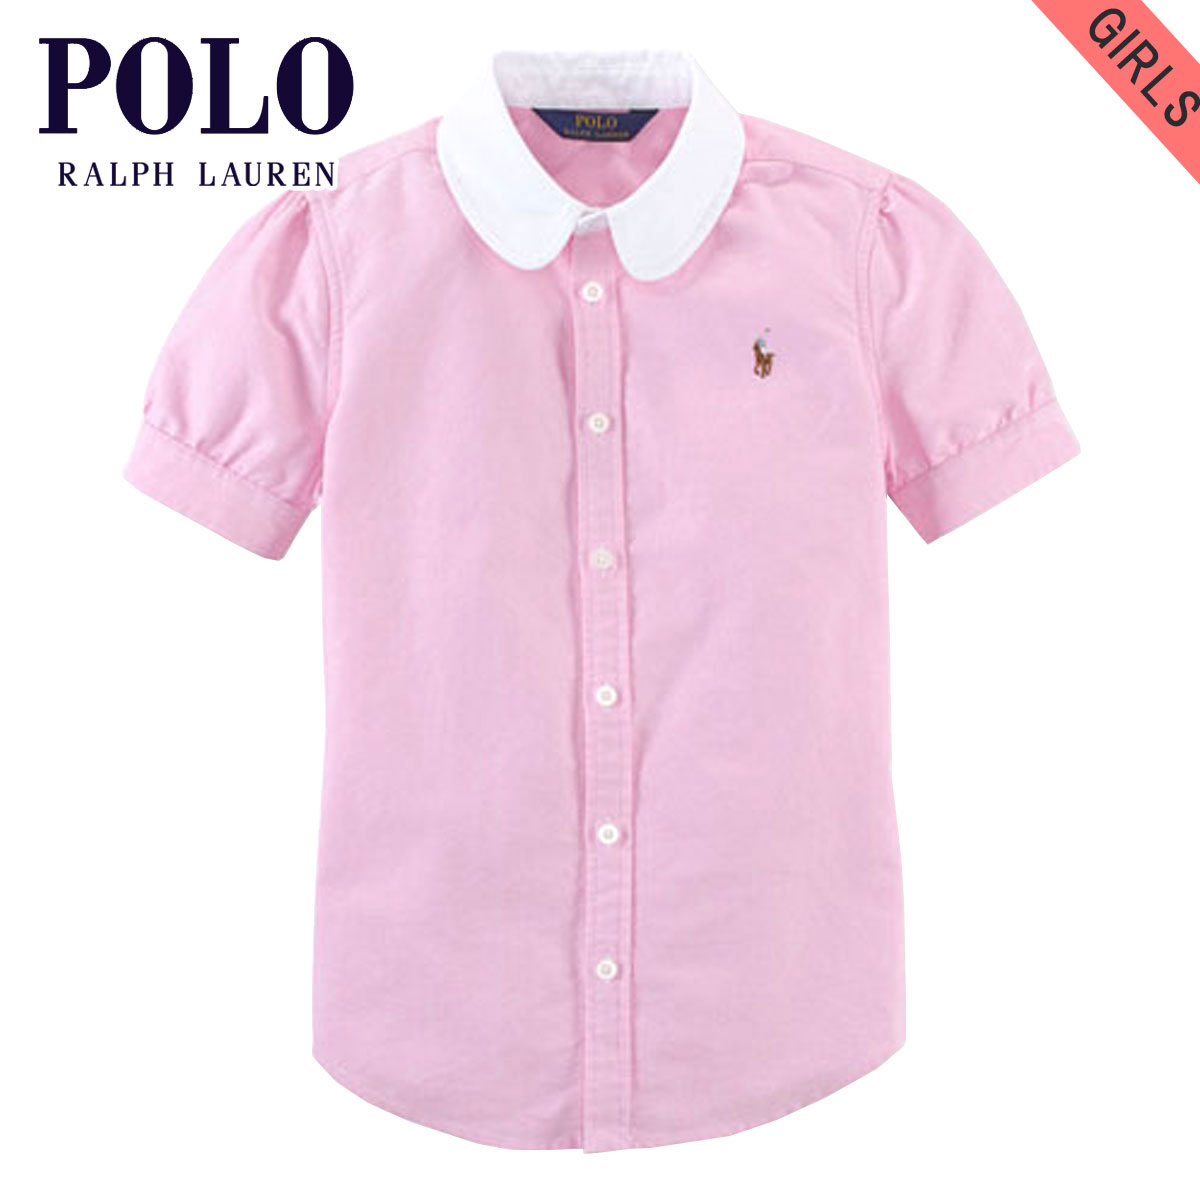 Polo Ralph Lauren rouge. Germany